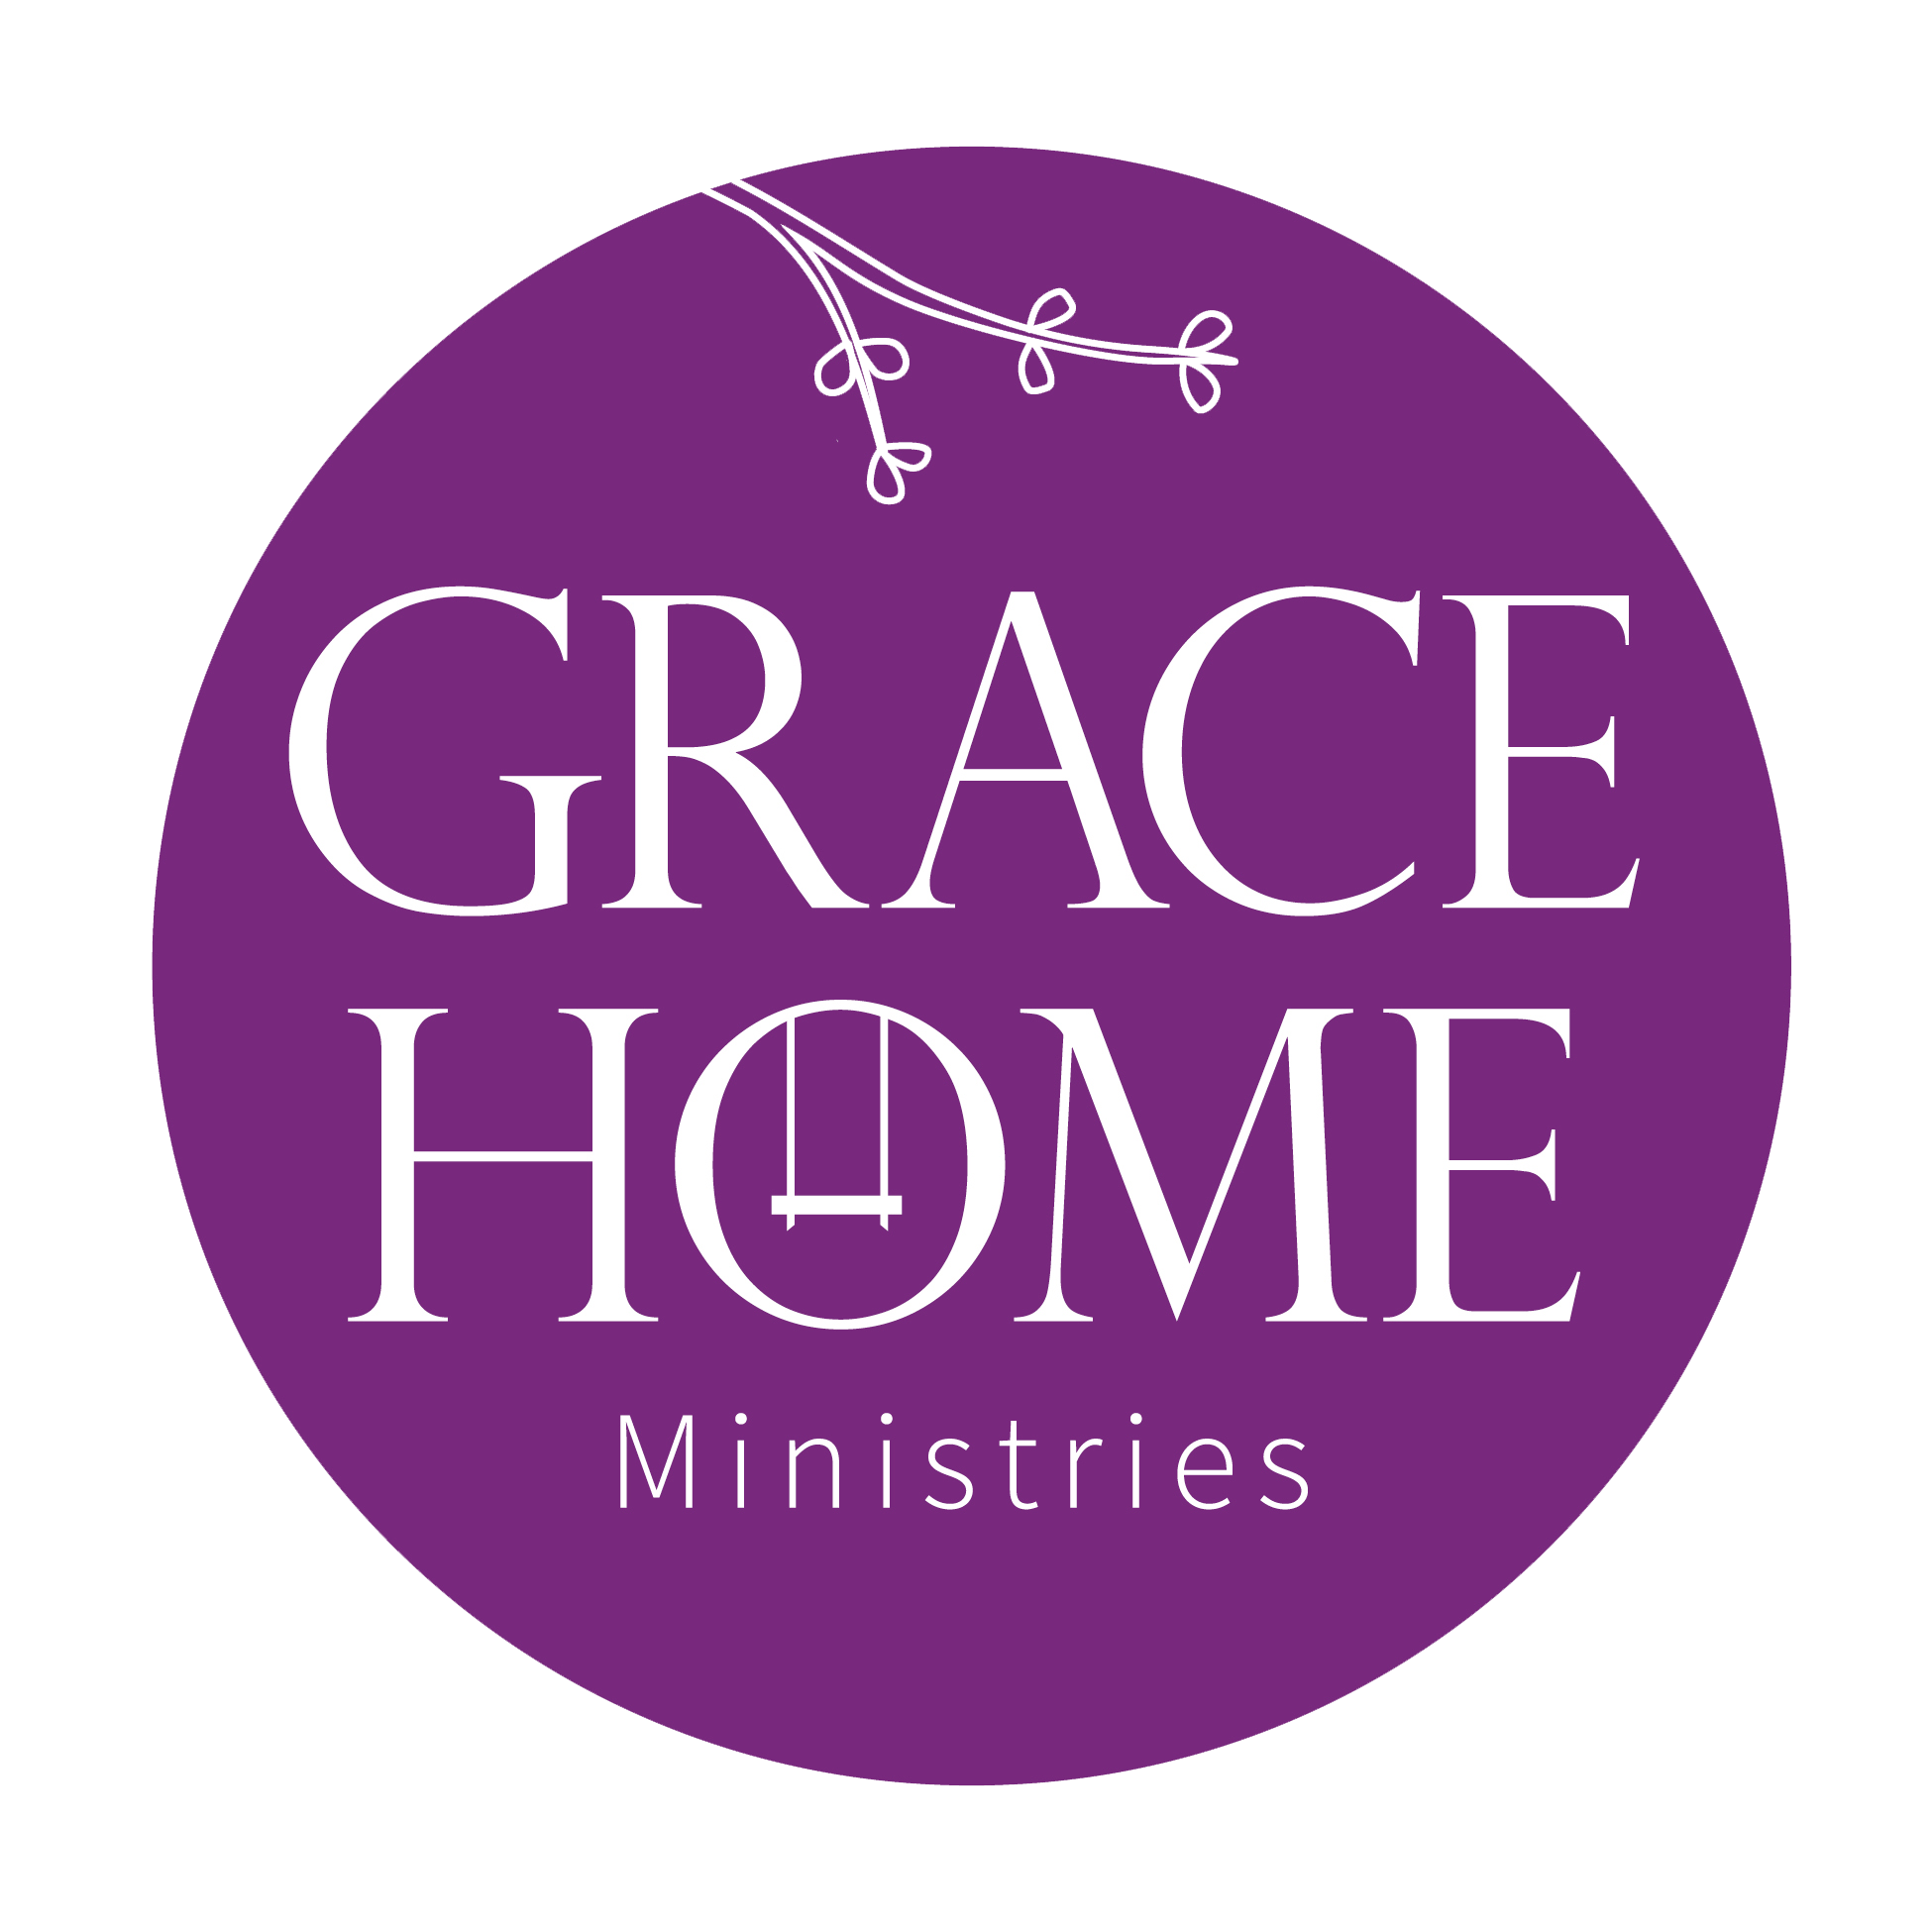 Grace Home Ministries